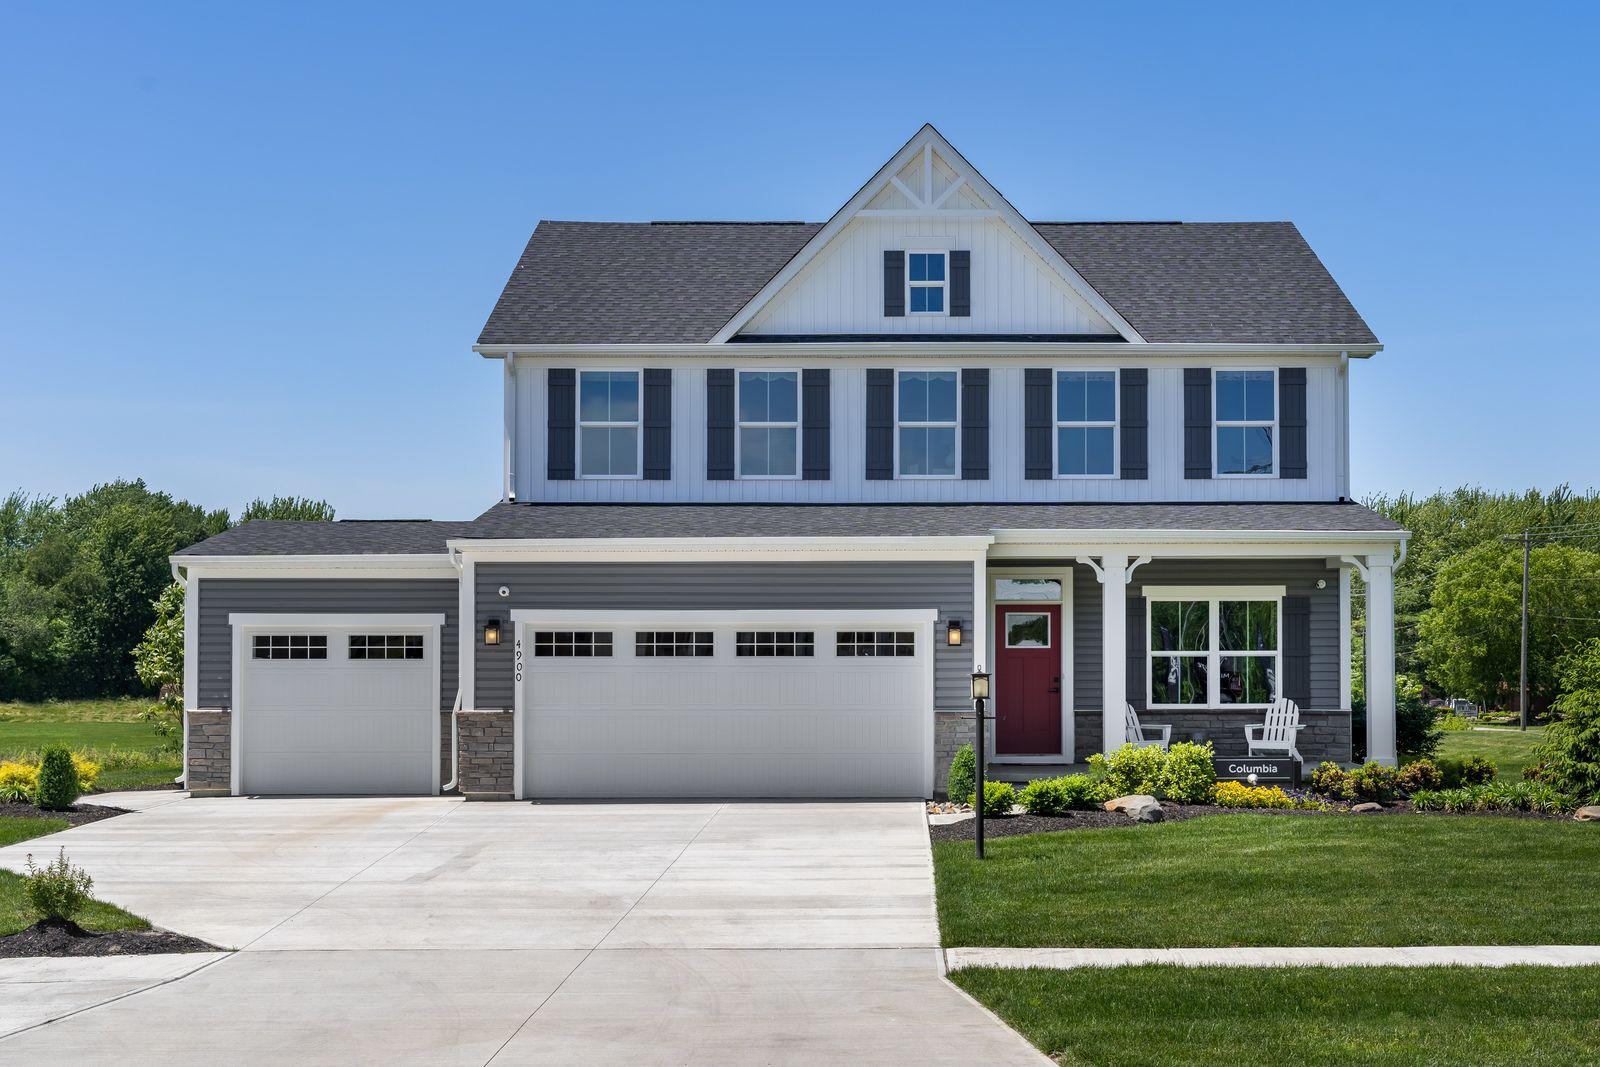 WELCOME TO WESTWOOD ESTATES:The lowest priced new homes in Webster Thomas schools with the most beautiful homesites, across from Webster Golf Course, minutes from Lake Ontario.Click here to schedule an appointment!